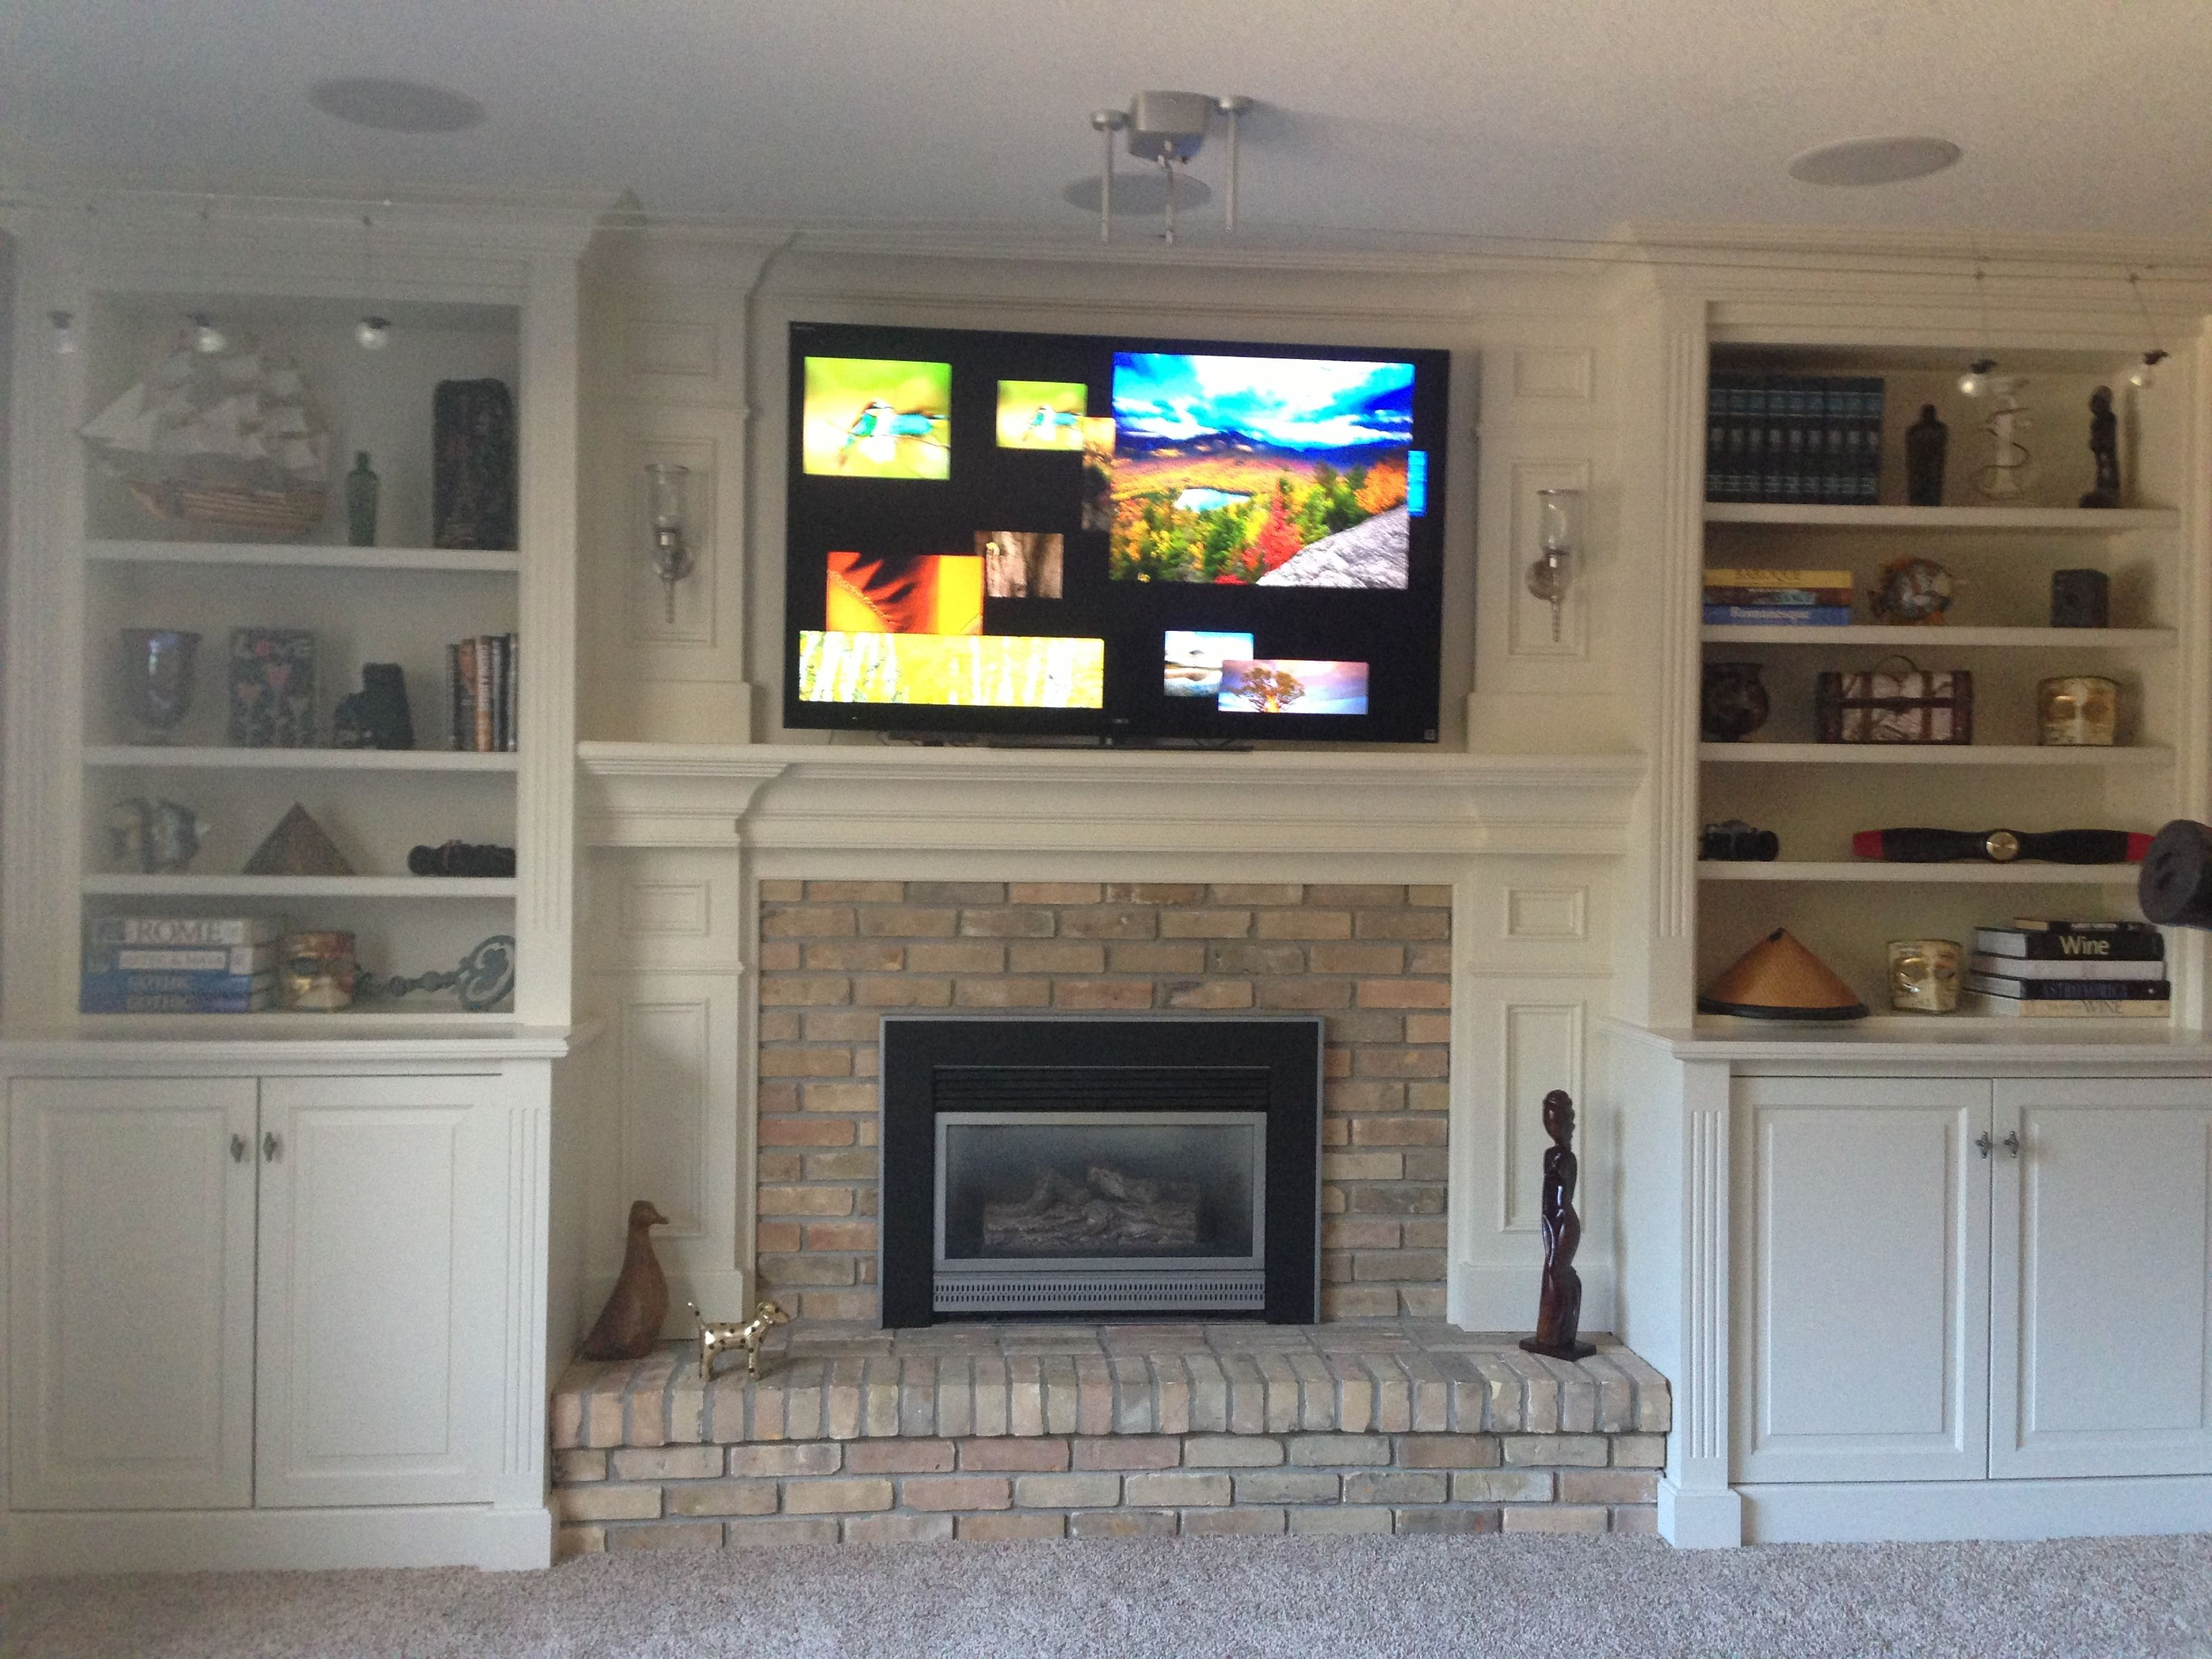 Fireplace With Bookshelves On Each Side Ideas Home Decor Best Bookcases Around Fireplace Styl Built In Around Fireplace Fireplace Shelves Fireplace Built Ins